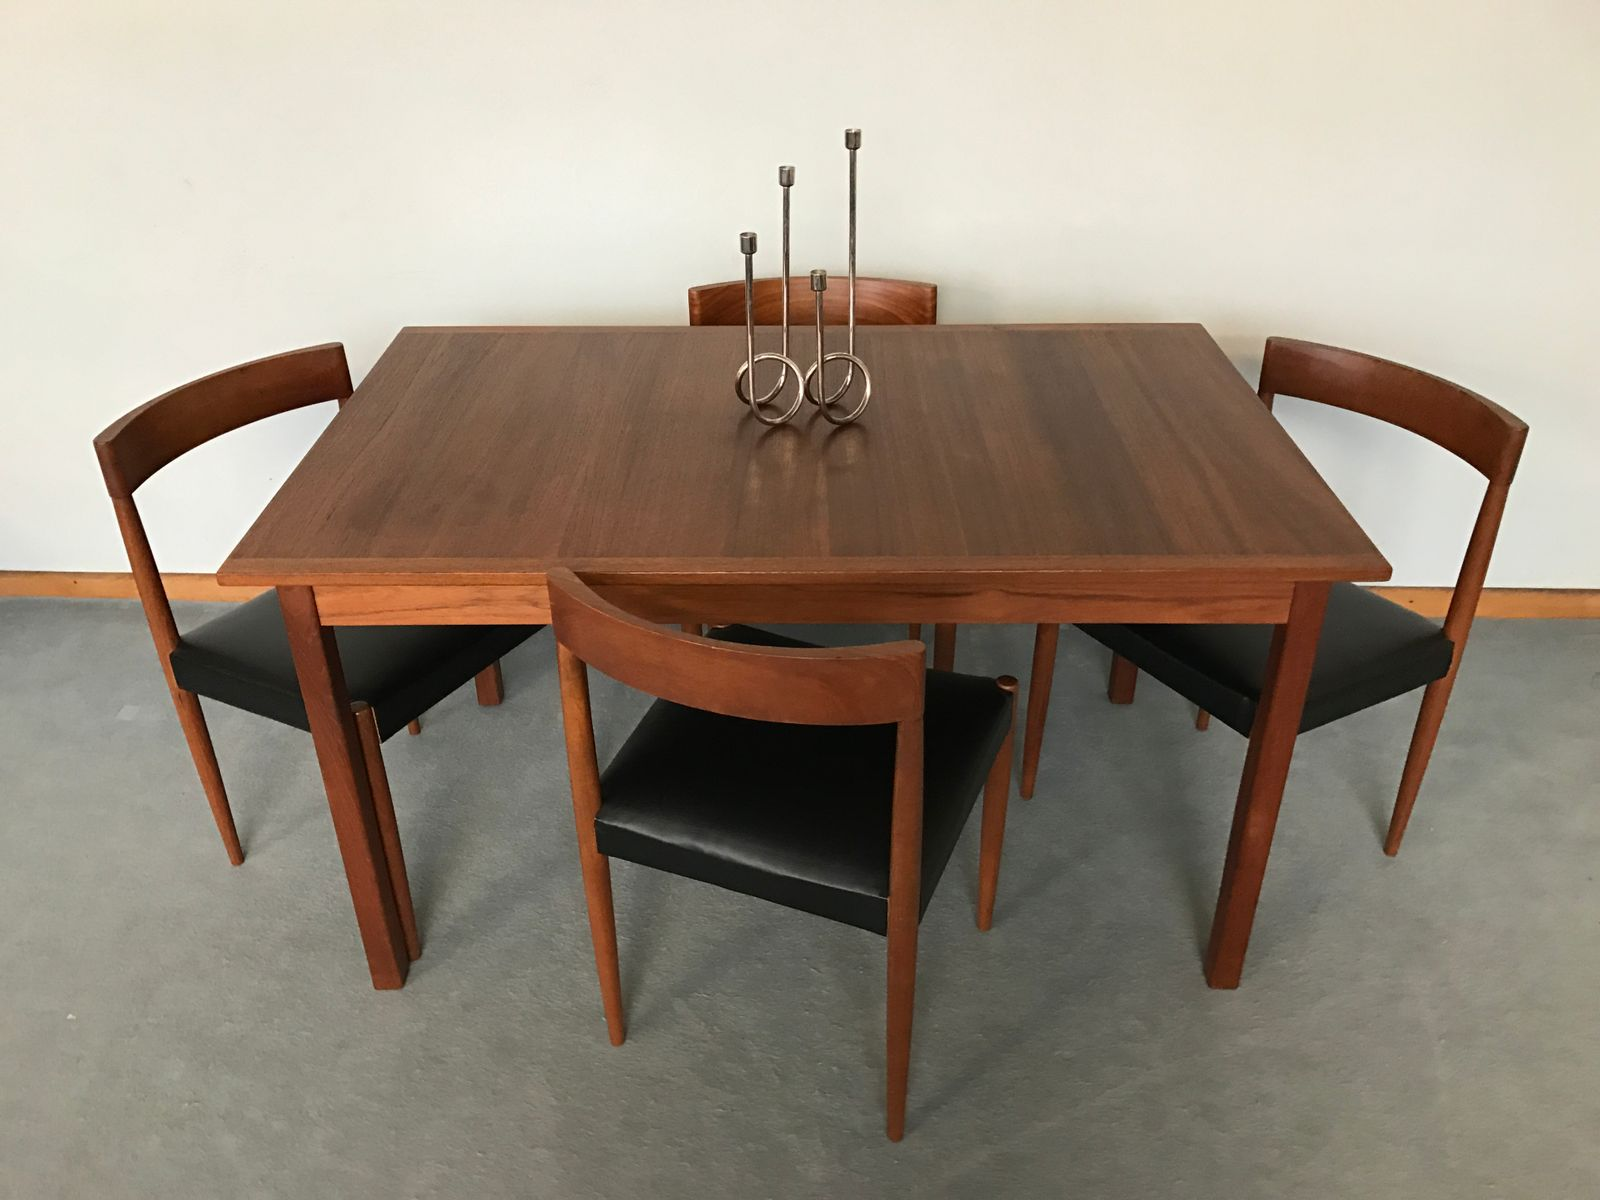 Table de salle manger vintage scandinave en teck par for Table de salle a manger scandinave